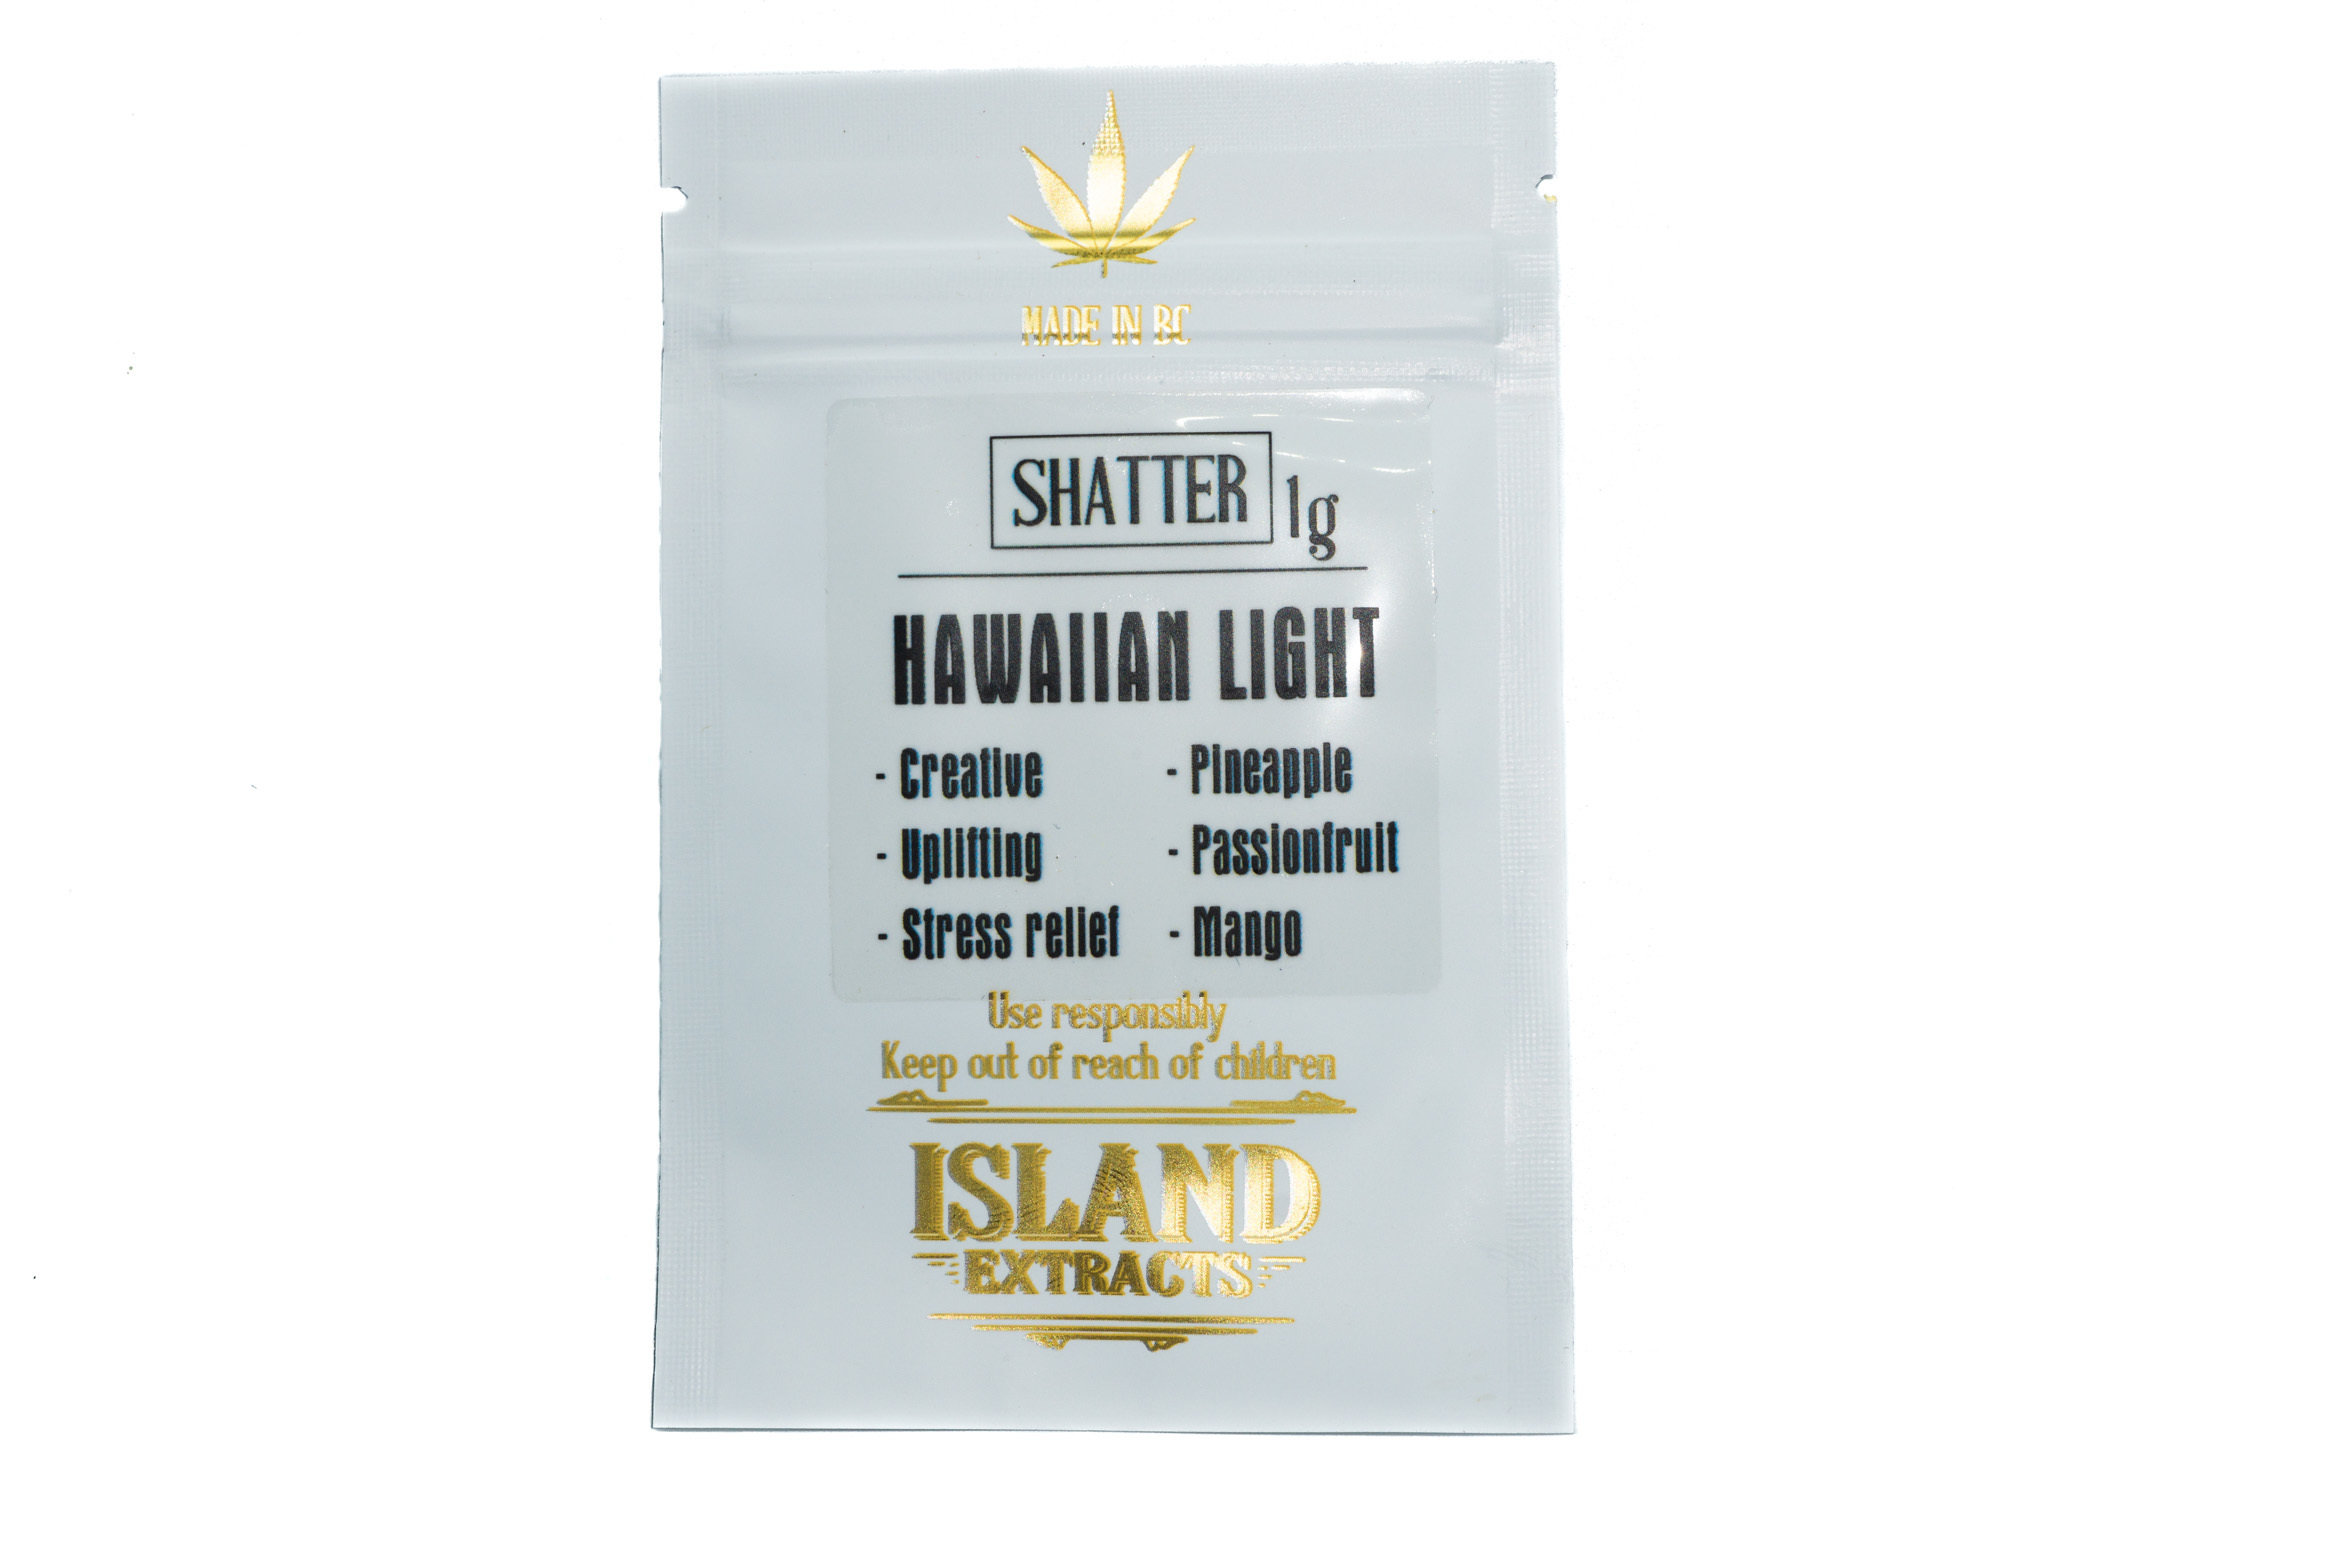 Hawaiian Light Shatter (1g) by Island Extracts 01224